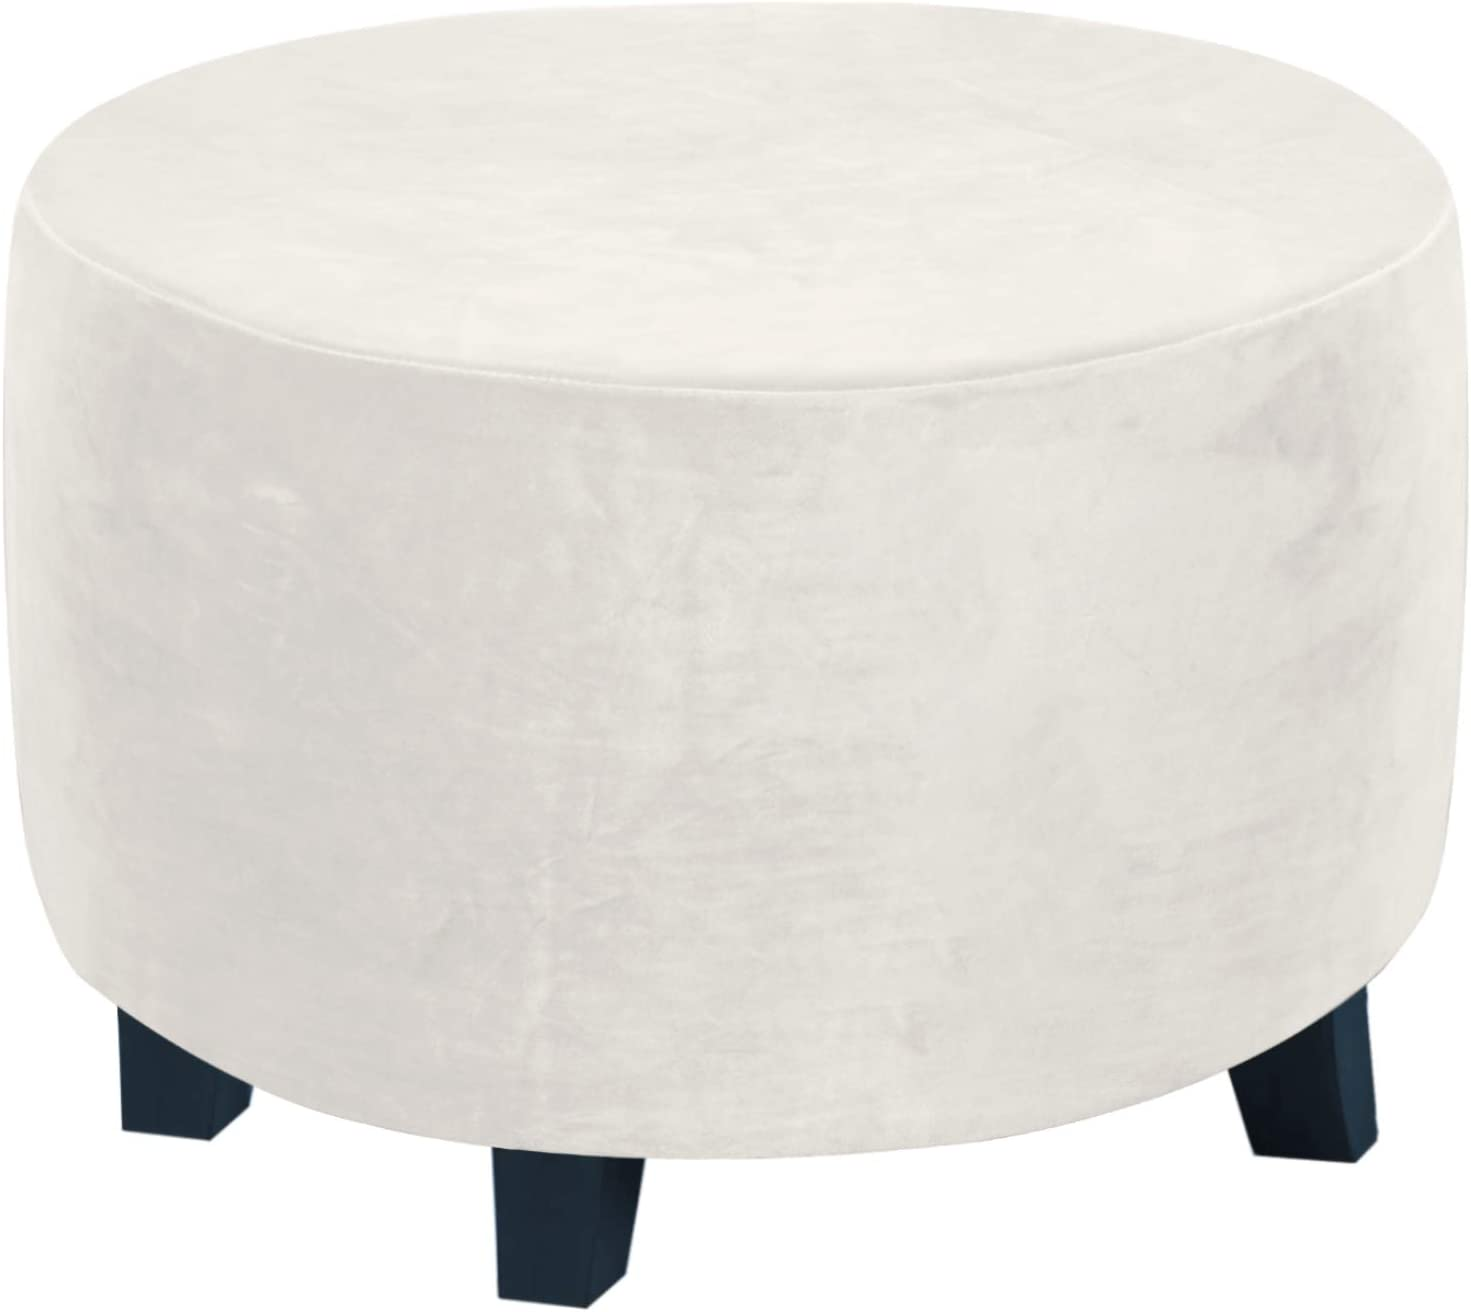 sold out Max 84% OFF Round Ottoman Slipcover Prote Footstool Covers